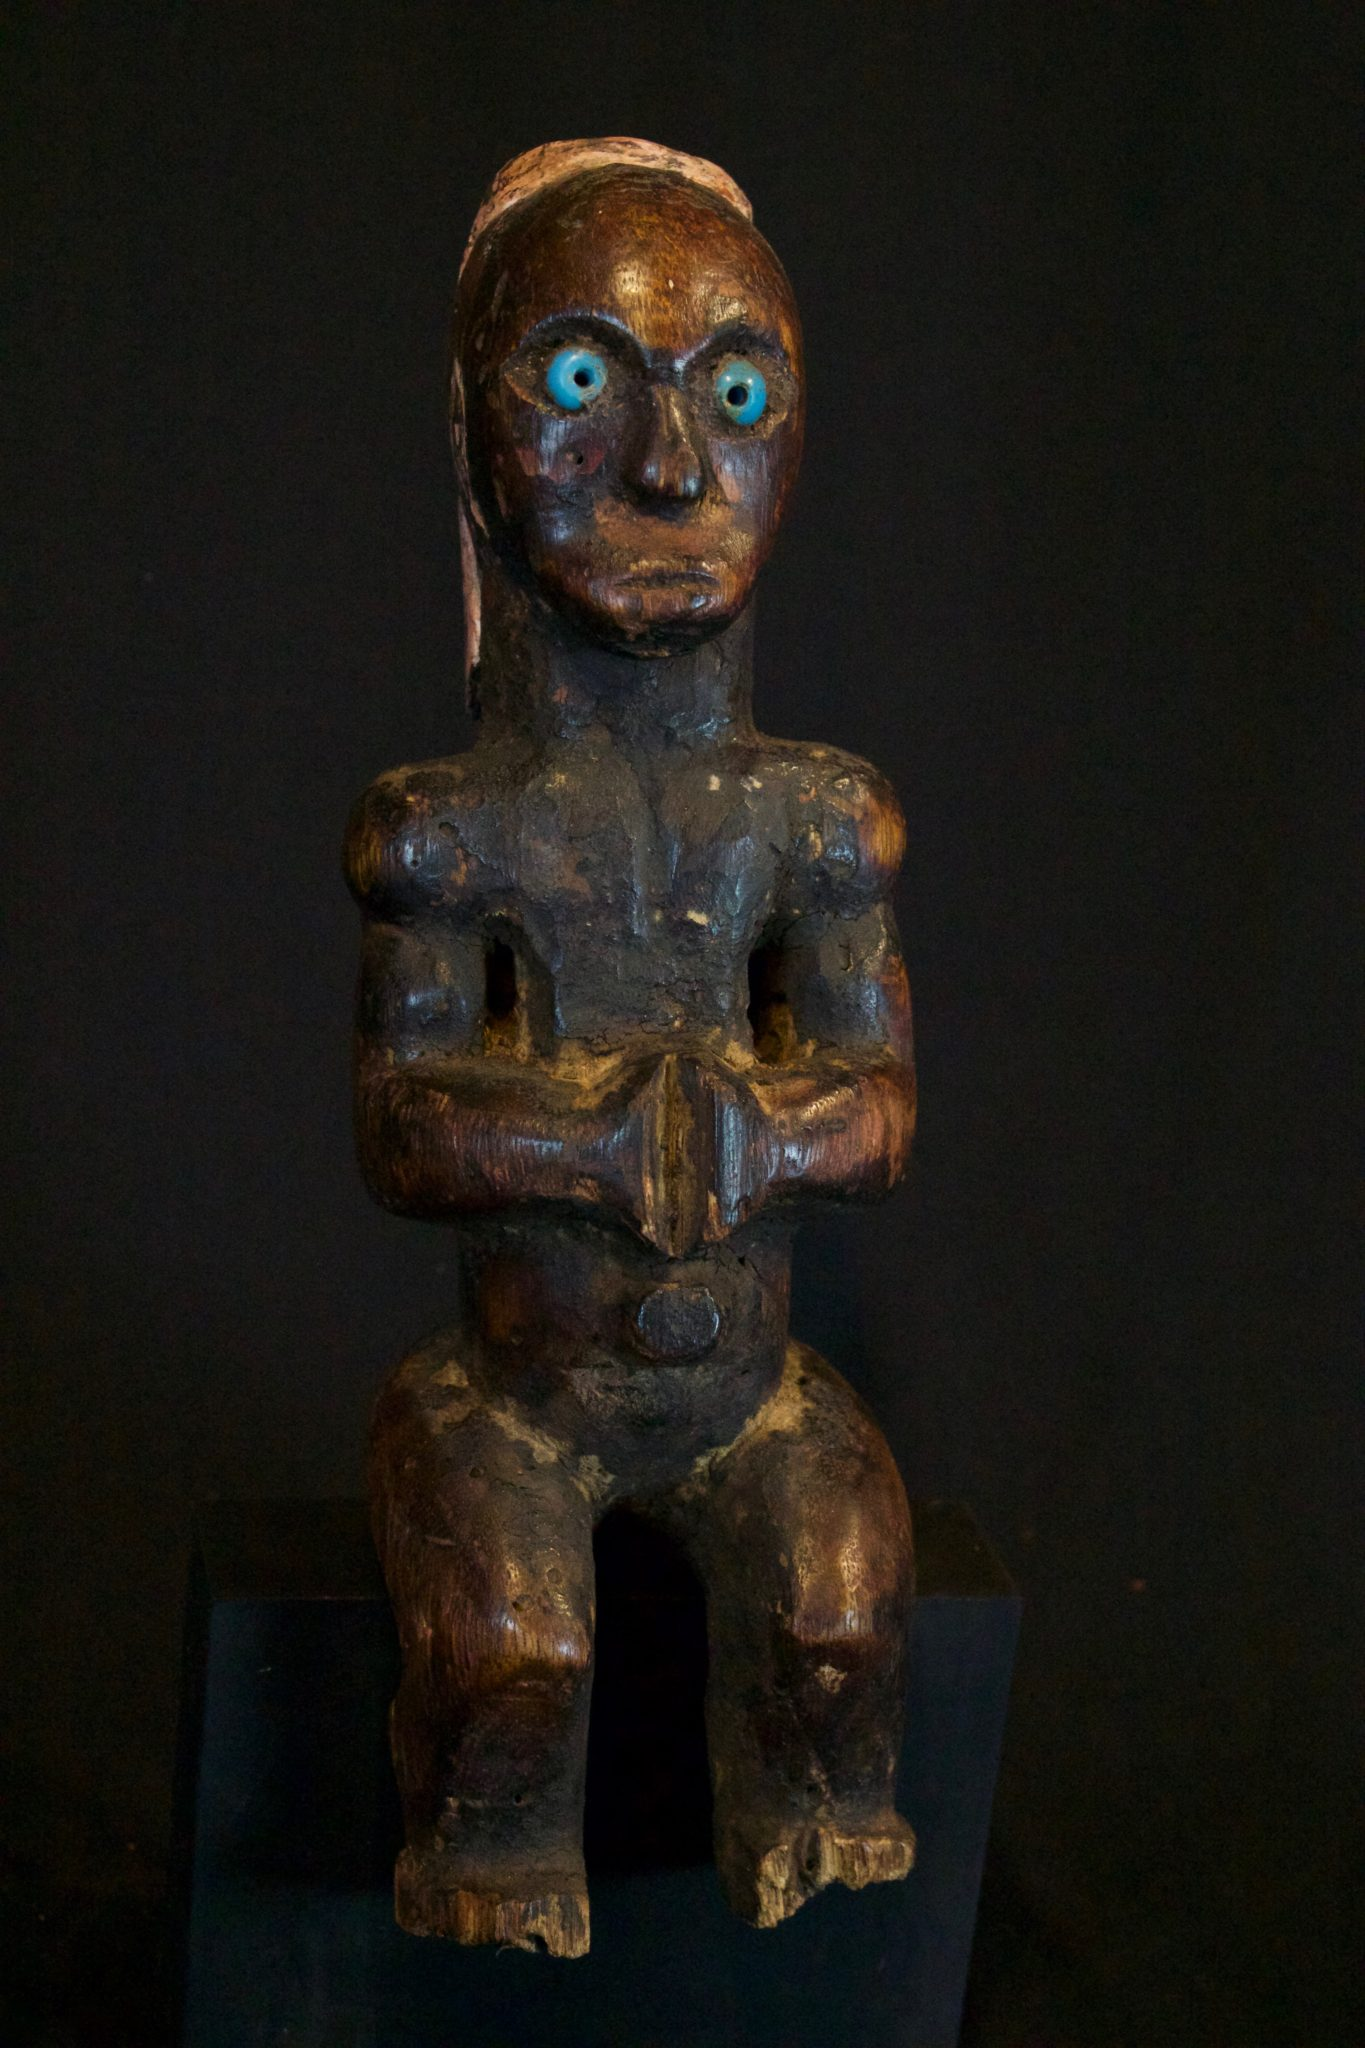 "Shaman Talisman Figure, Wetar Island, Timor Islands, Lesser Sunda Islands, Indonesia, Late 19th c, Wood, pigment, glass bead eyes. Used for healing treatment. 12 ½"" x 4"" x 4"", $430."